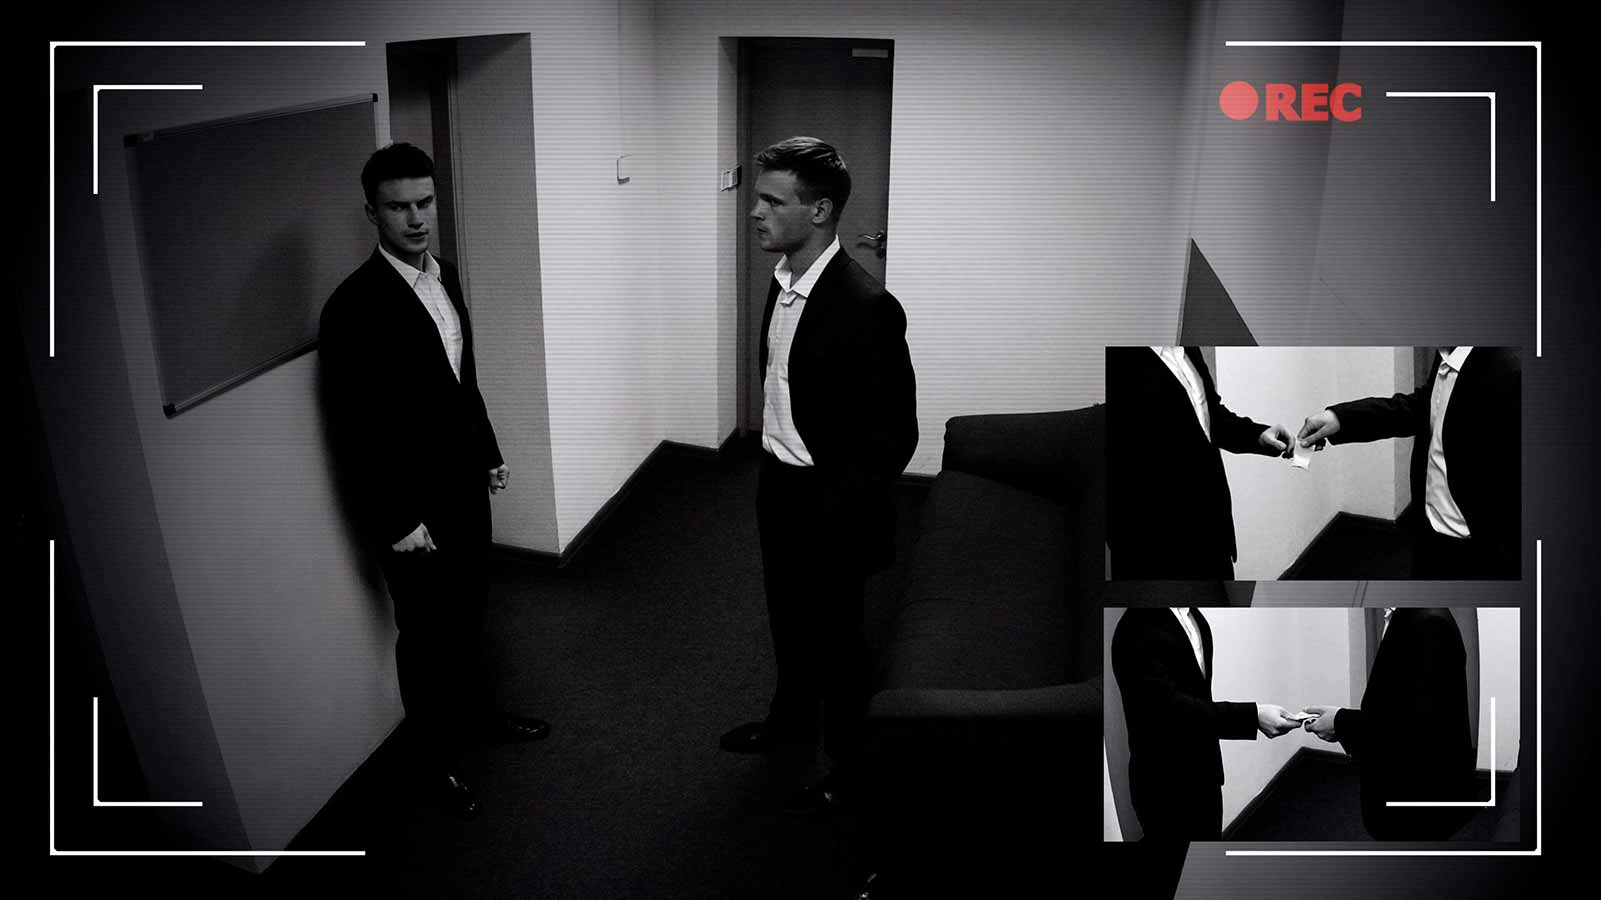 two men making a deal on a security camera